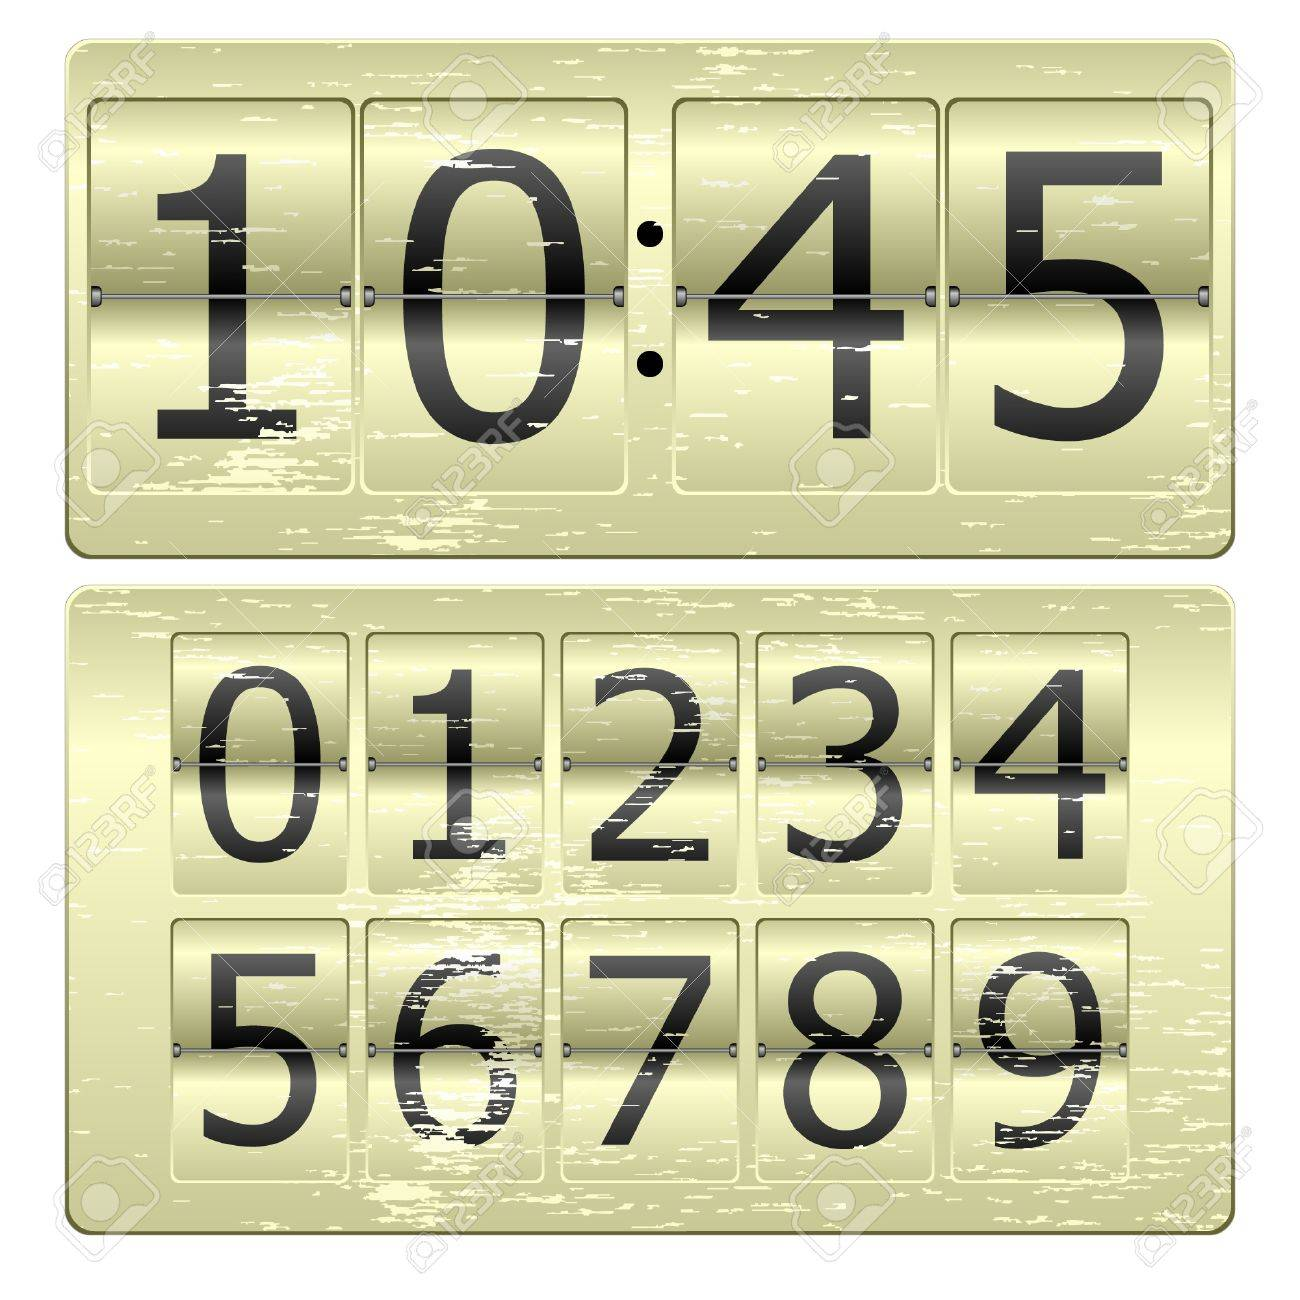 Set of numbers for use as a clock or counter - 8365876